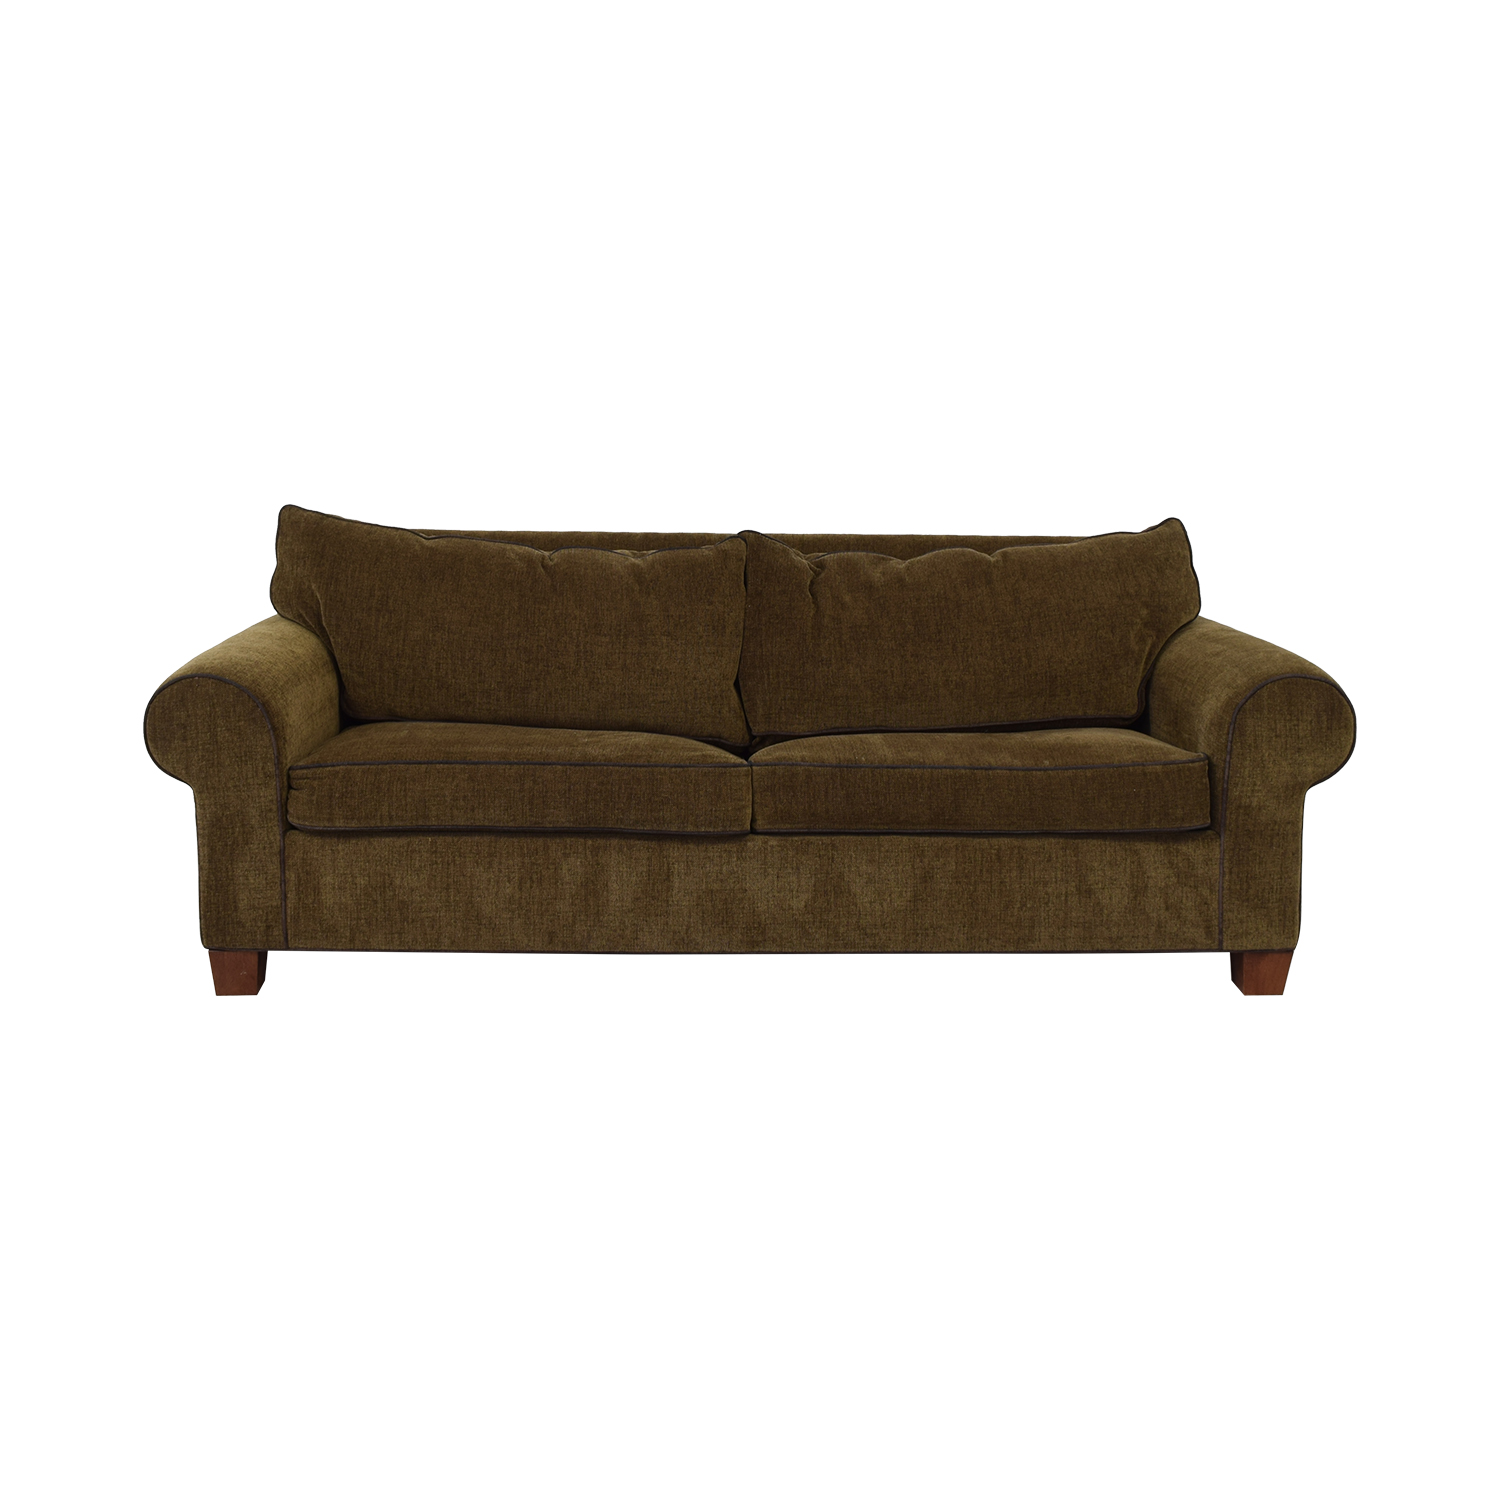 Norwalk Furniture Norwalk Furniture Queen Sleeper Sofa nyc